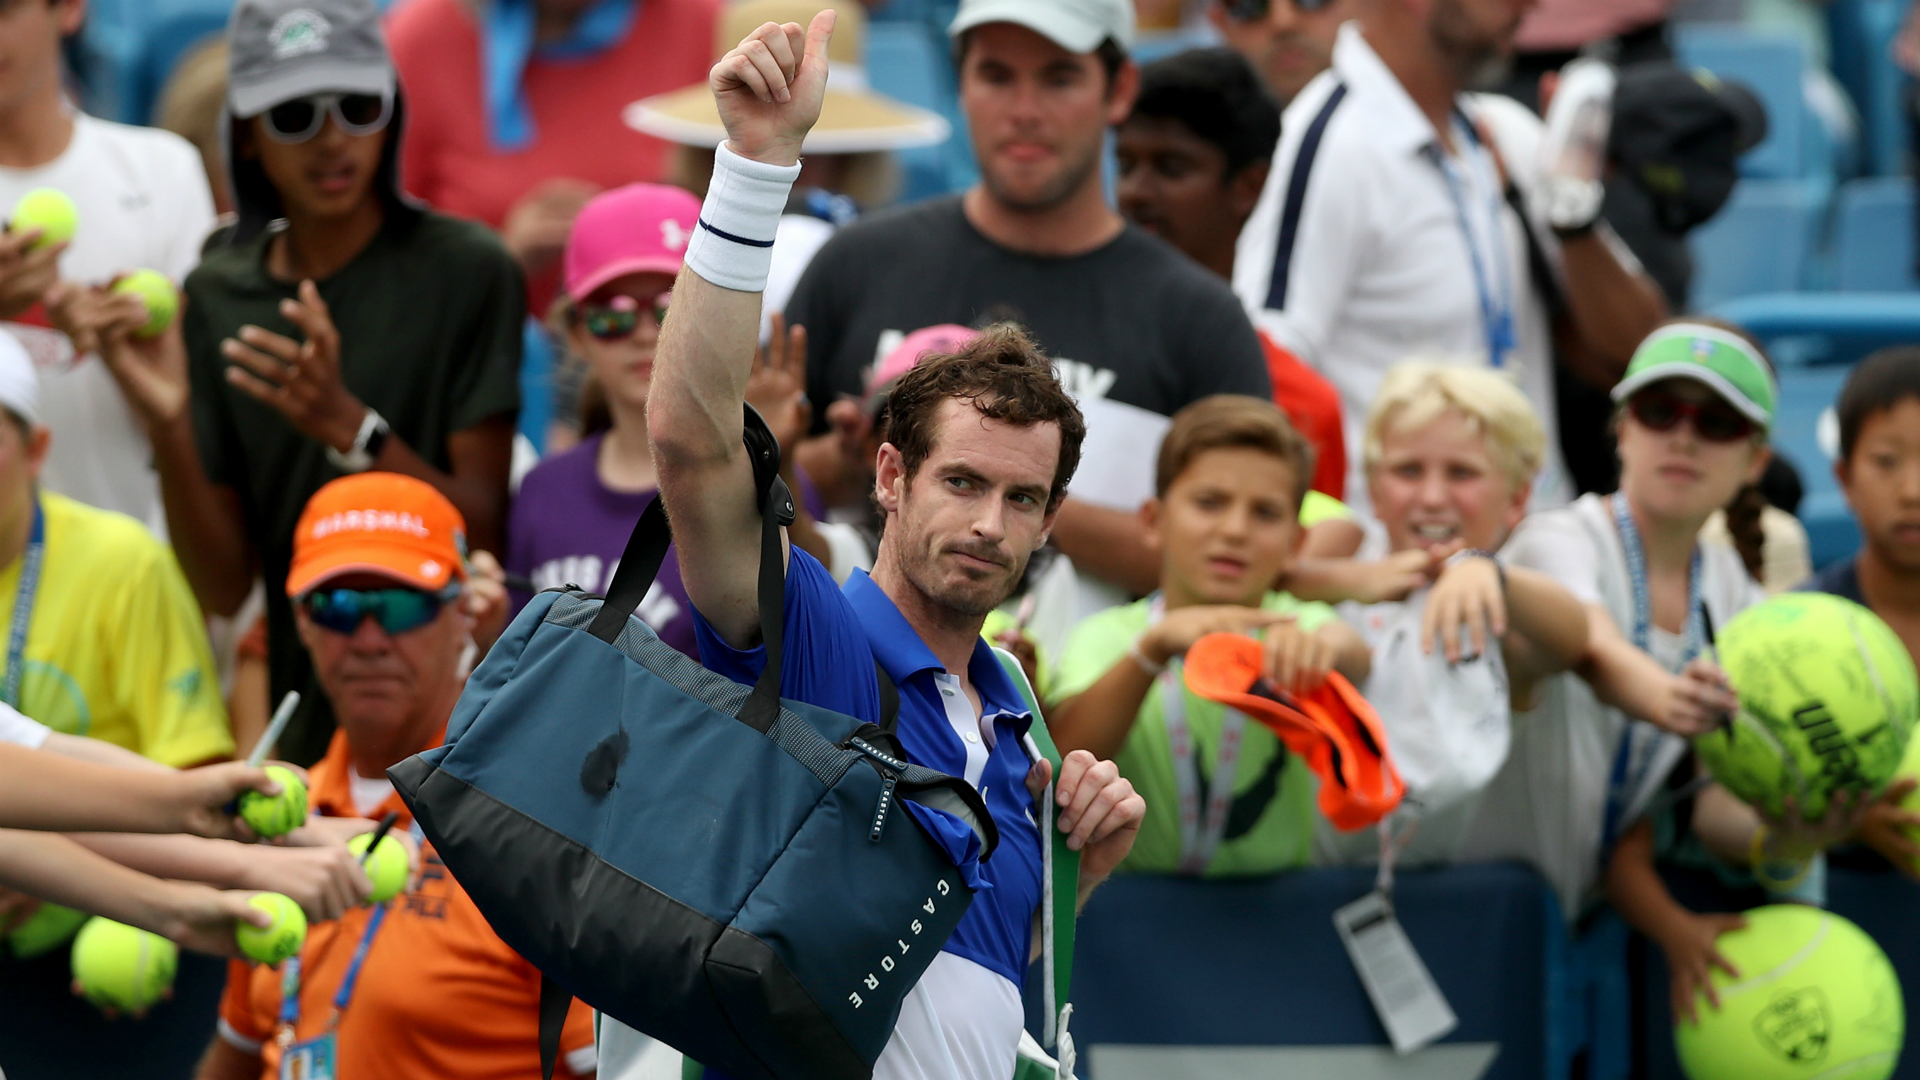 Andy Murray says he needs time after skipping U.S. Open singles